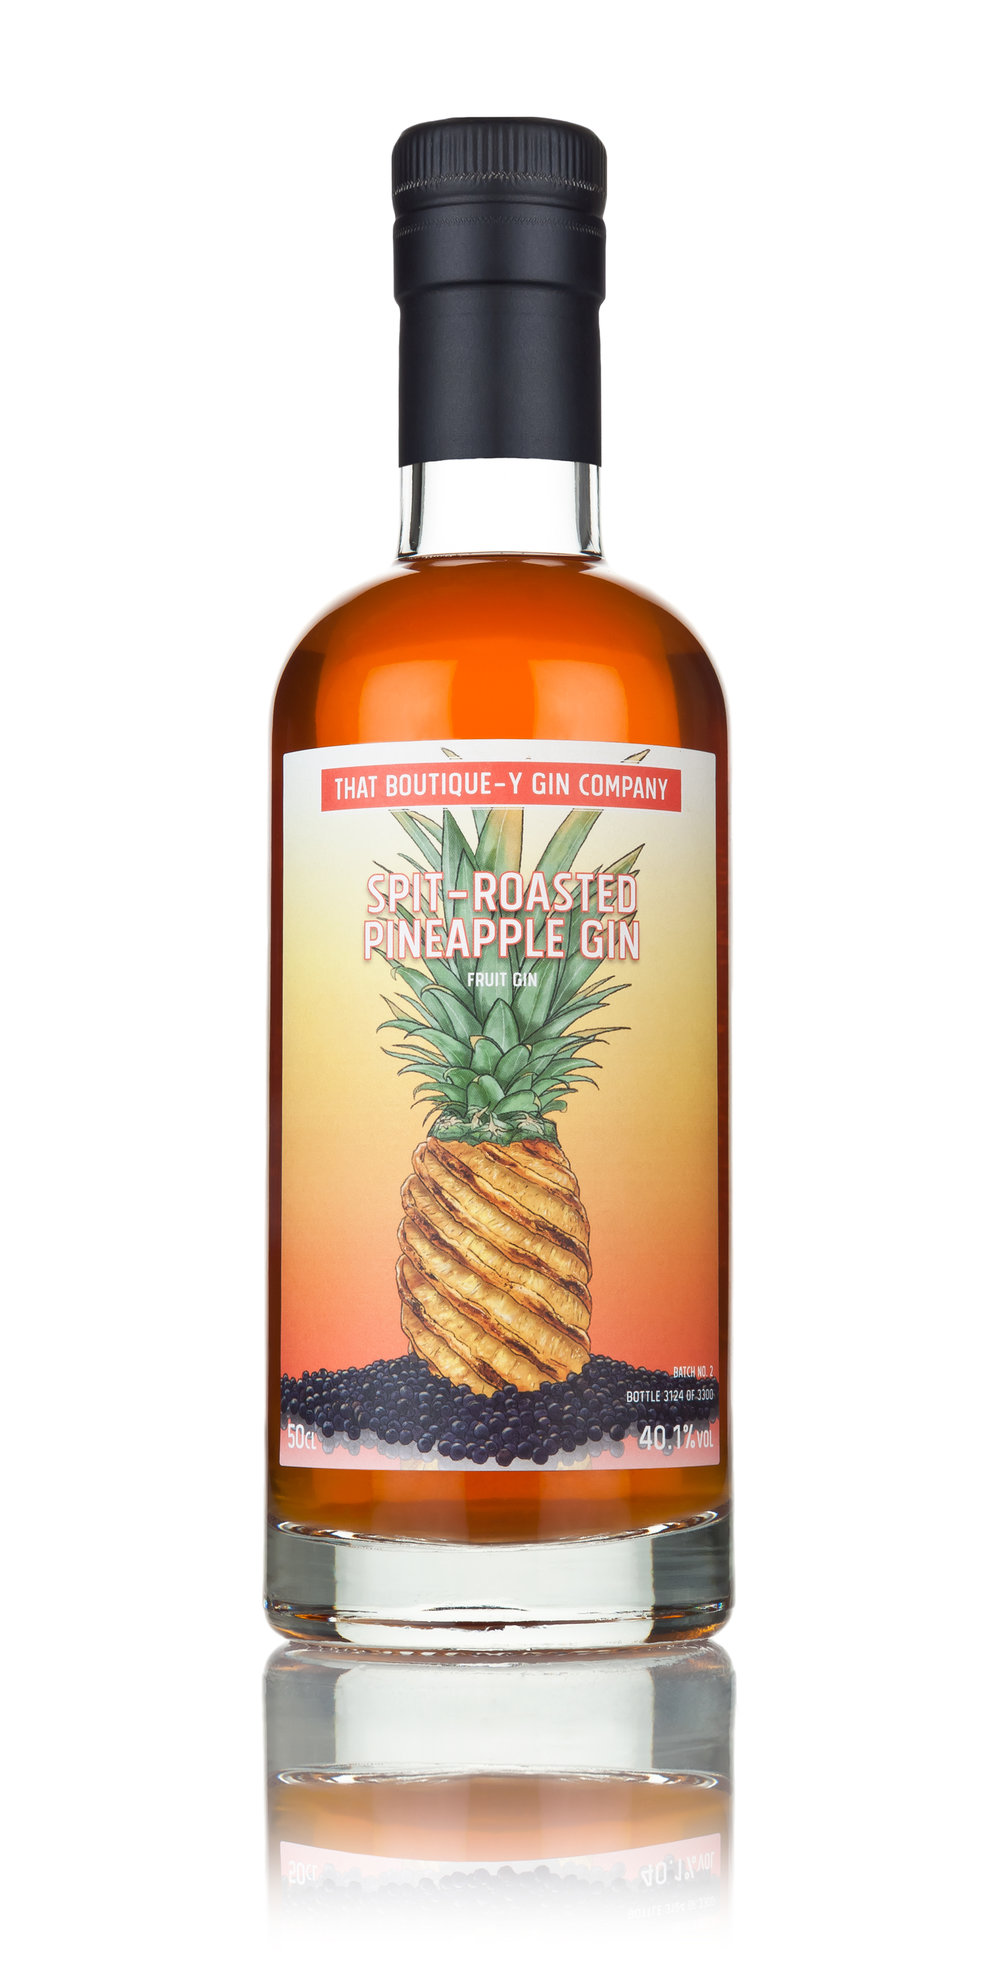 Spit-Roasted Pineapple Gin (That Boutique-y Gin Company).jpg